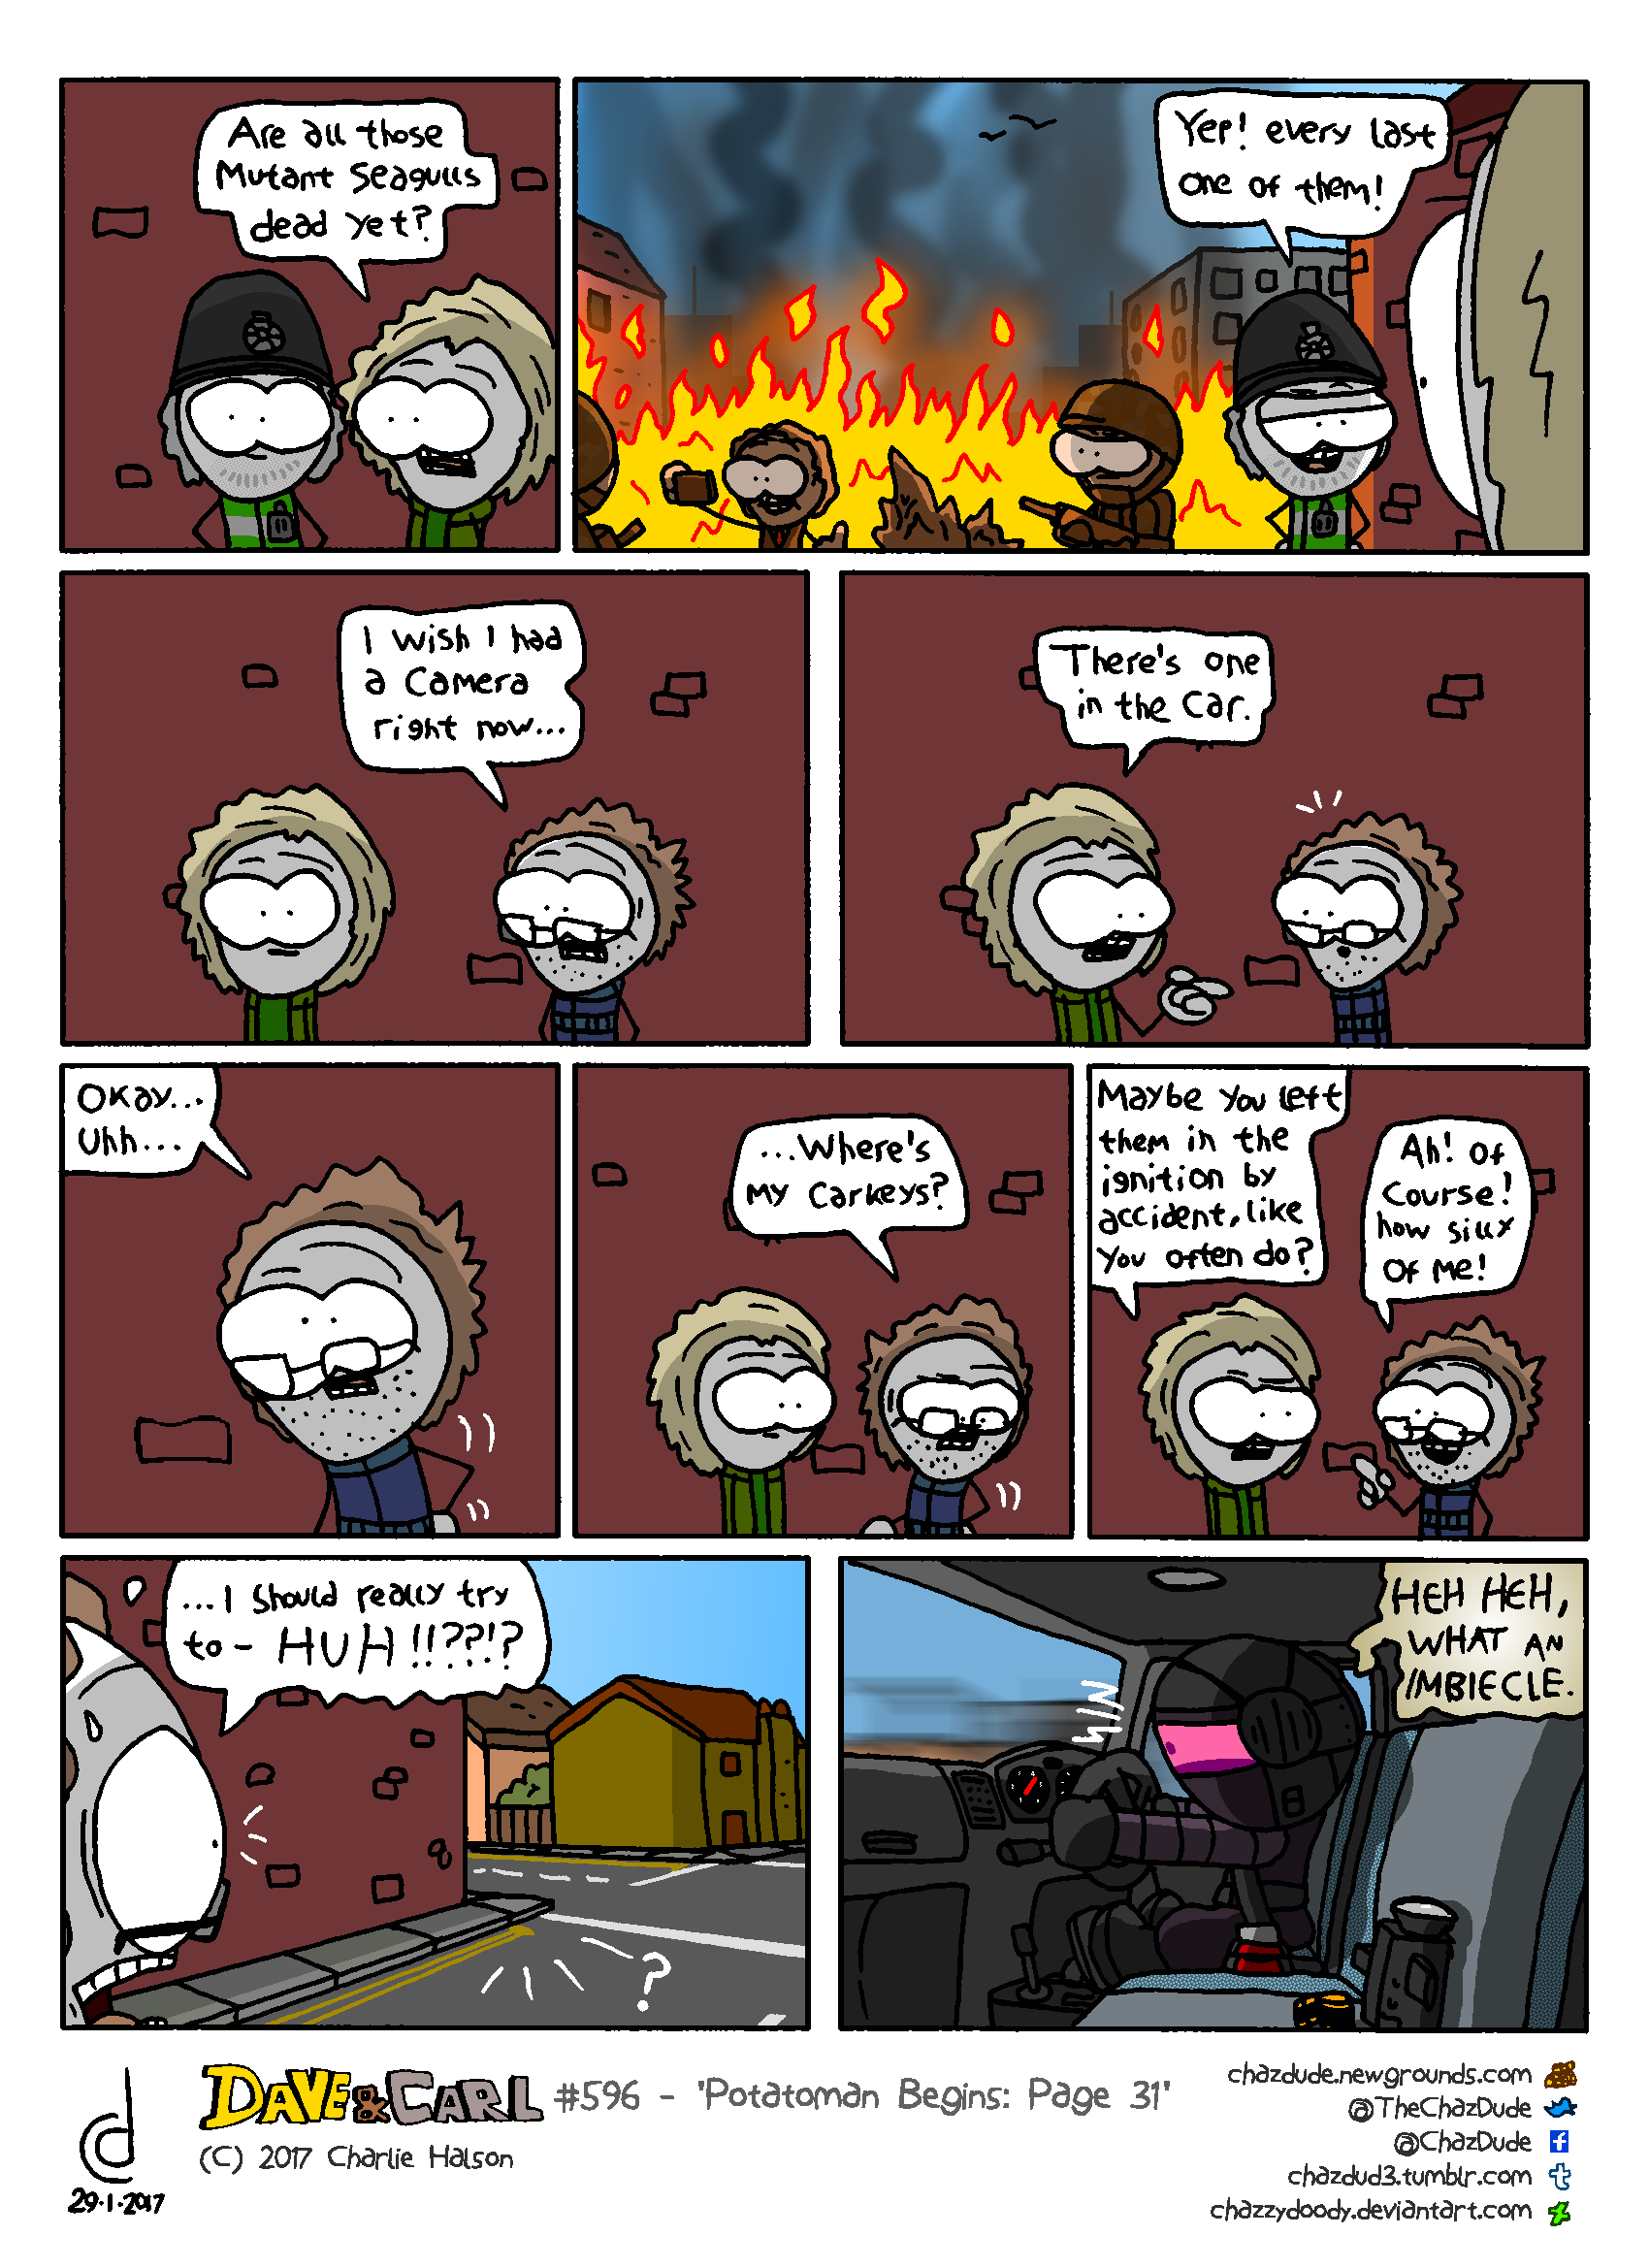 Potatoman Begins: Page 31